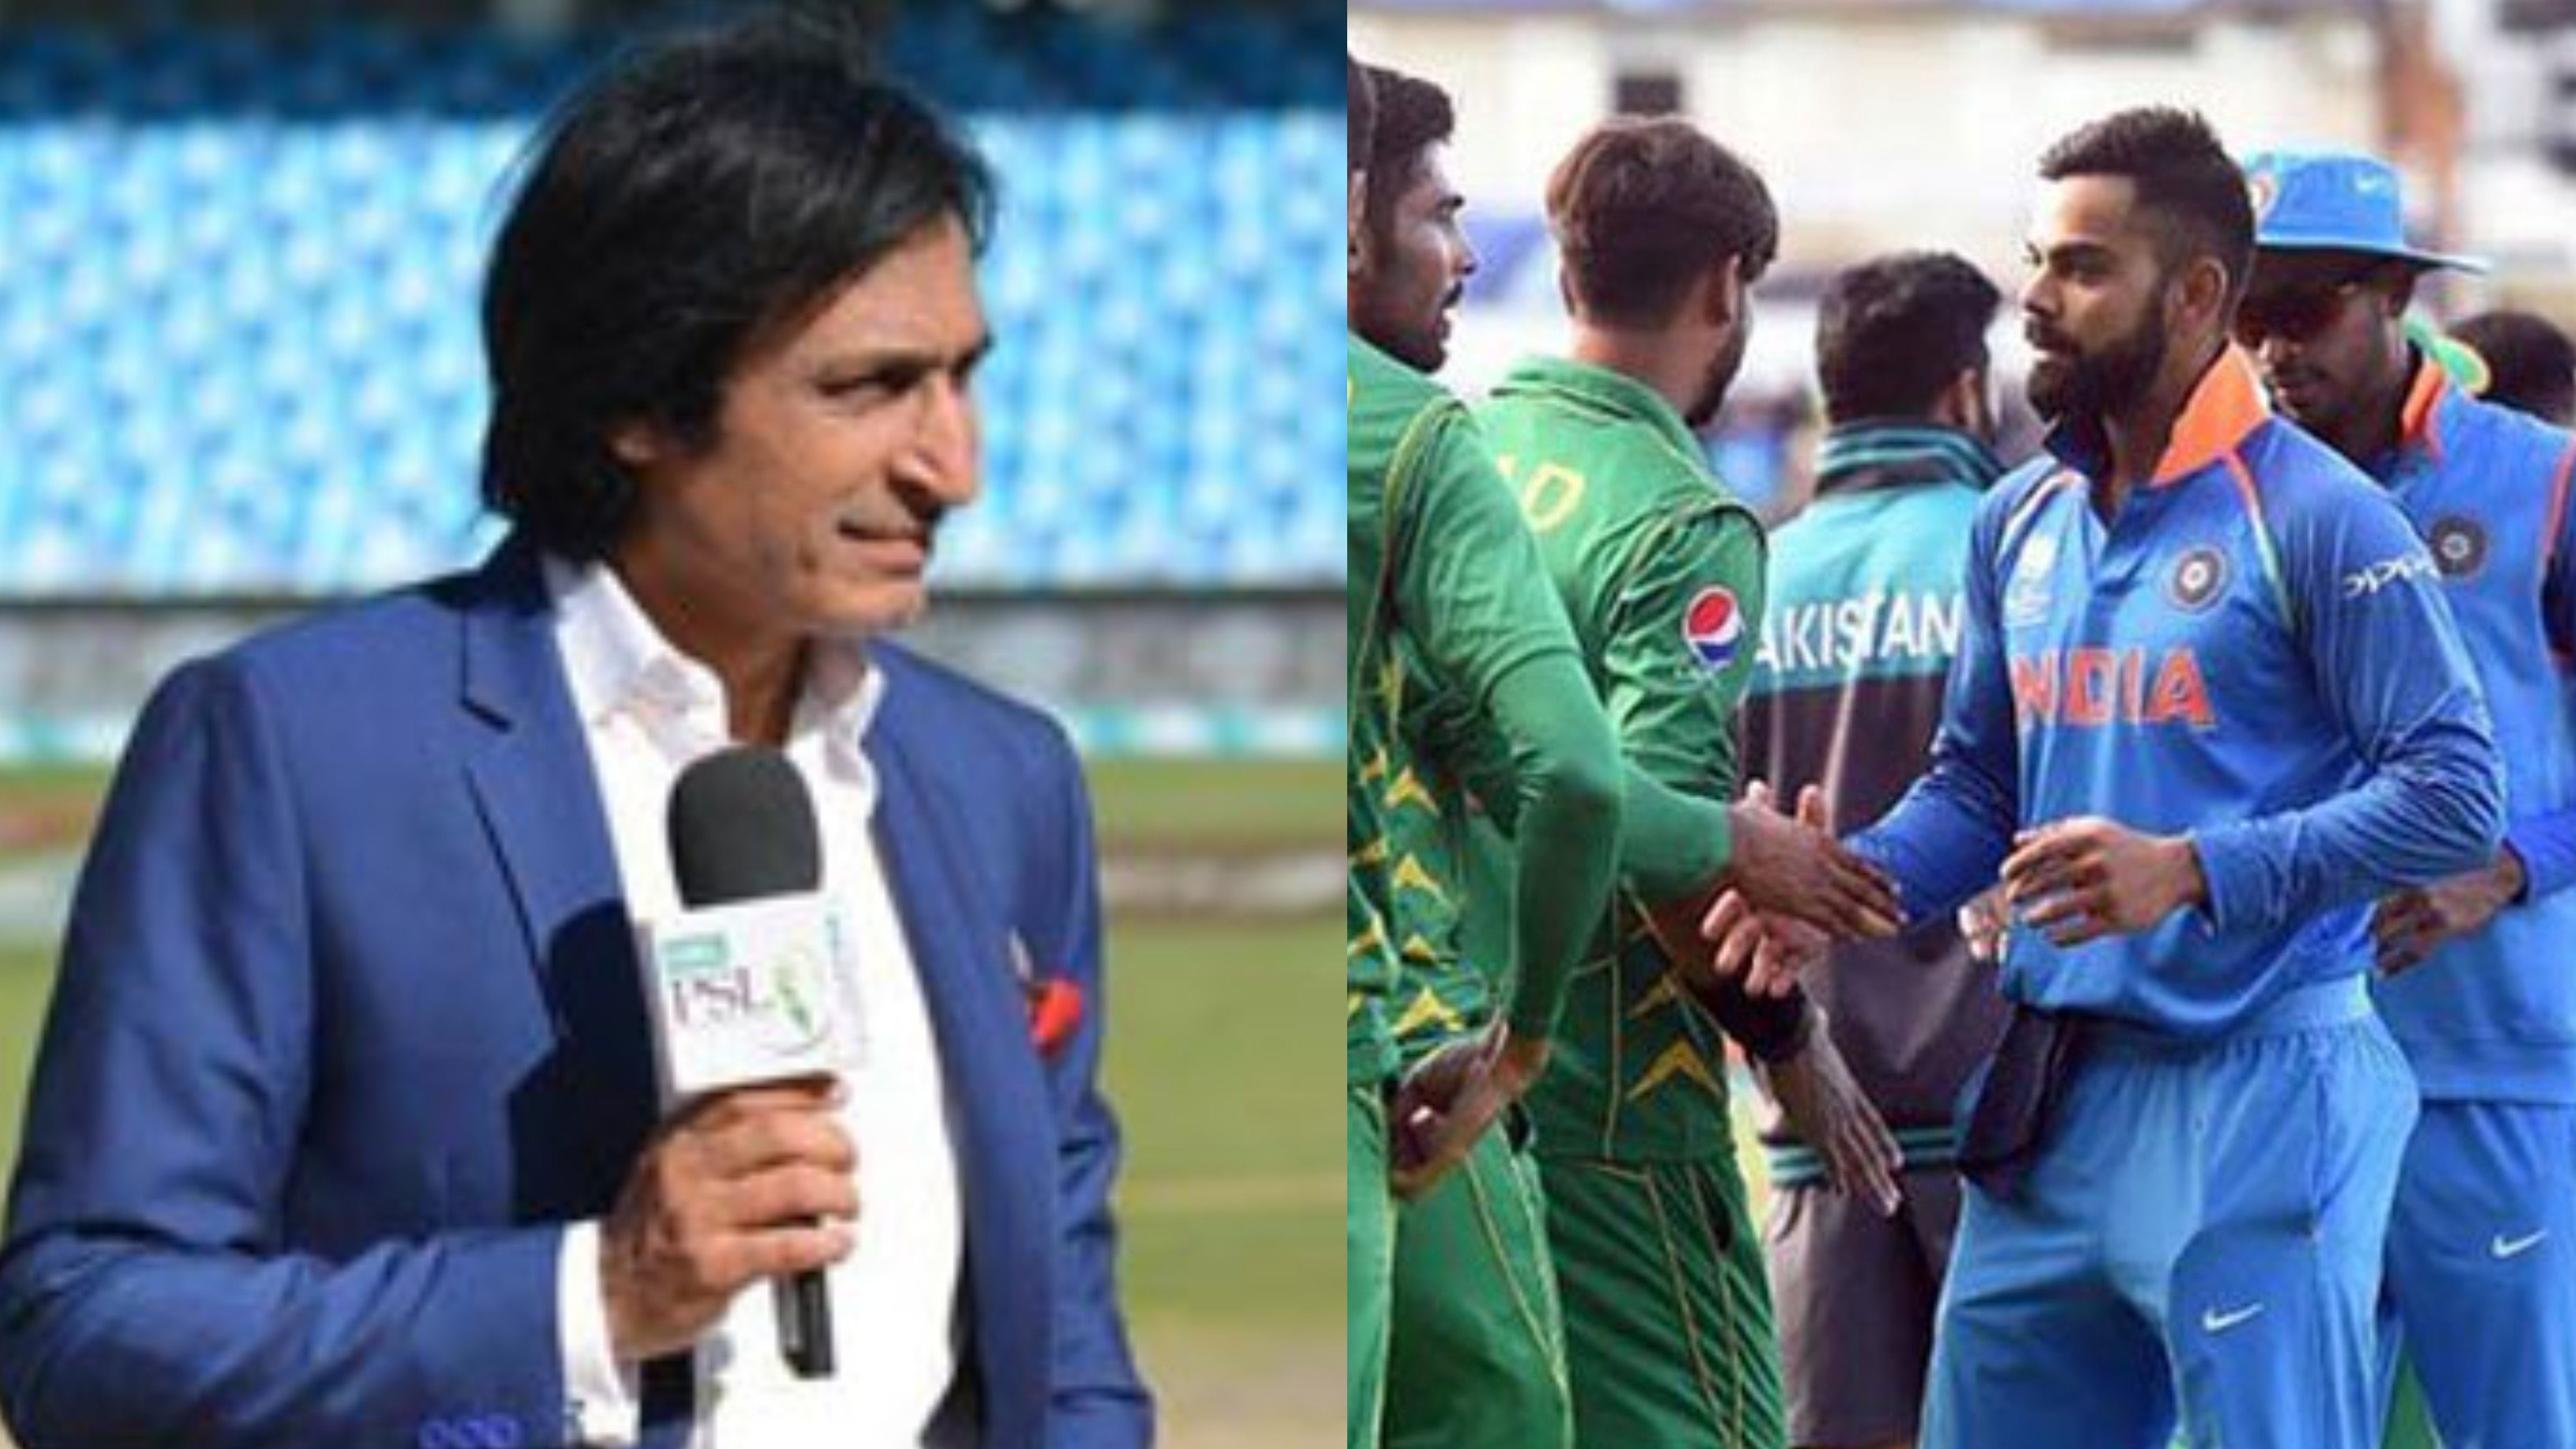 Only India-Pakistan series can save Test cricket, opines Rameez Raja